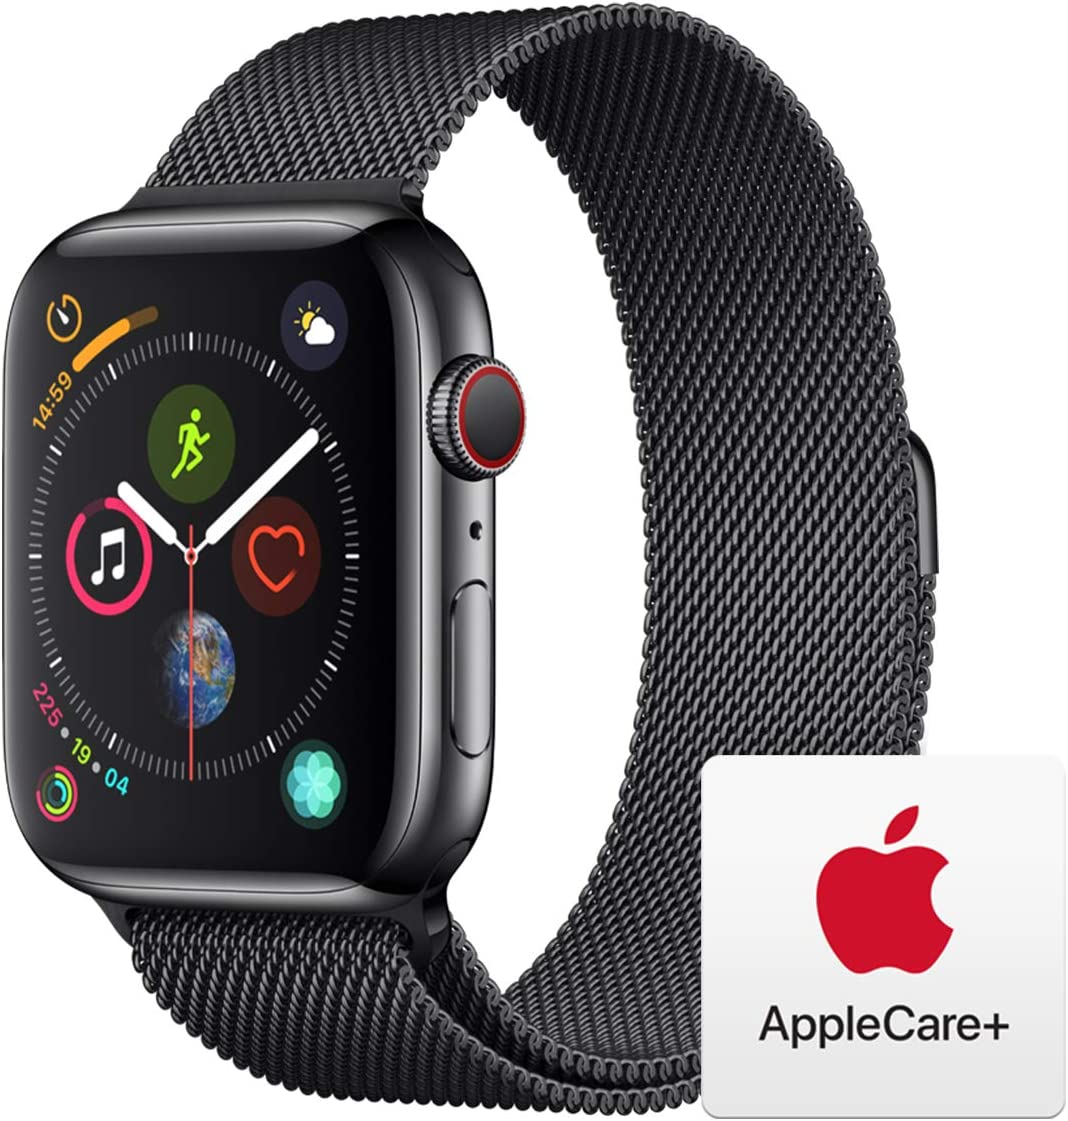 Apple Watch Series 4 (GPS + Cellular, 44mm) - Space Black Stainless Steel Case with Space Black Milanese Loop with AppleCare+ Bundle